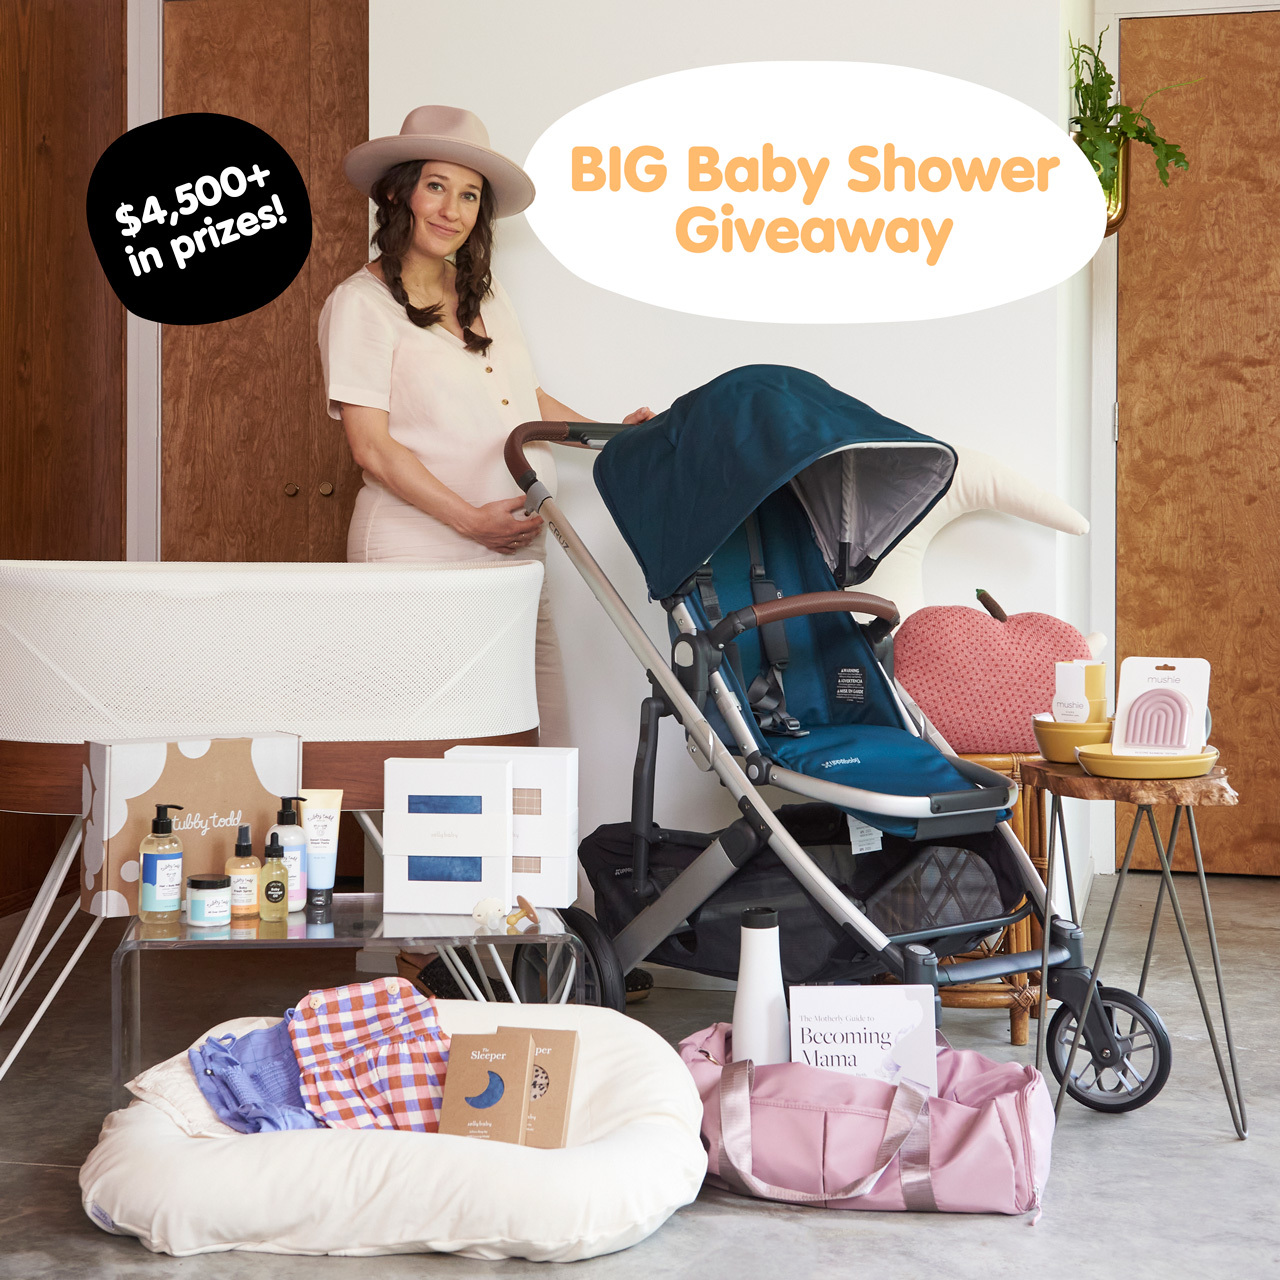 Tubby Todd Art Director's BIG Baby Shower Giveaway